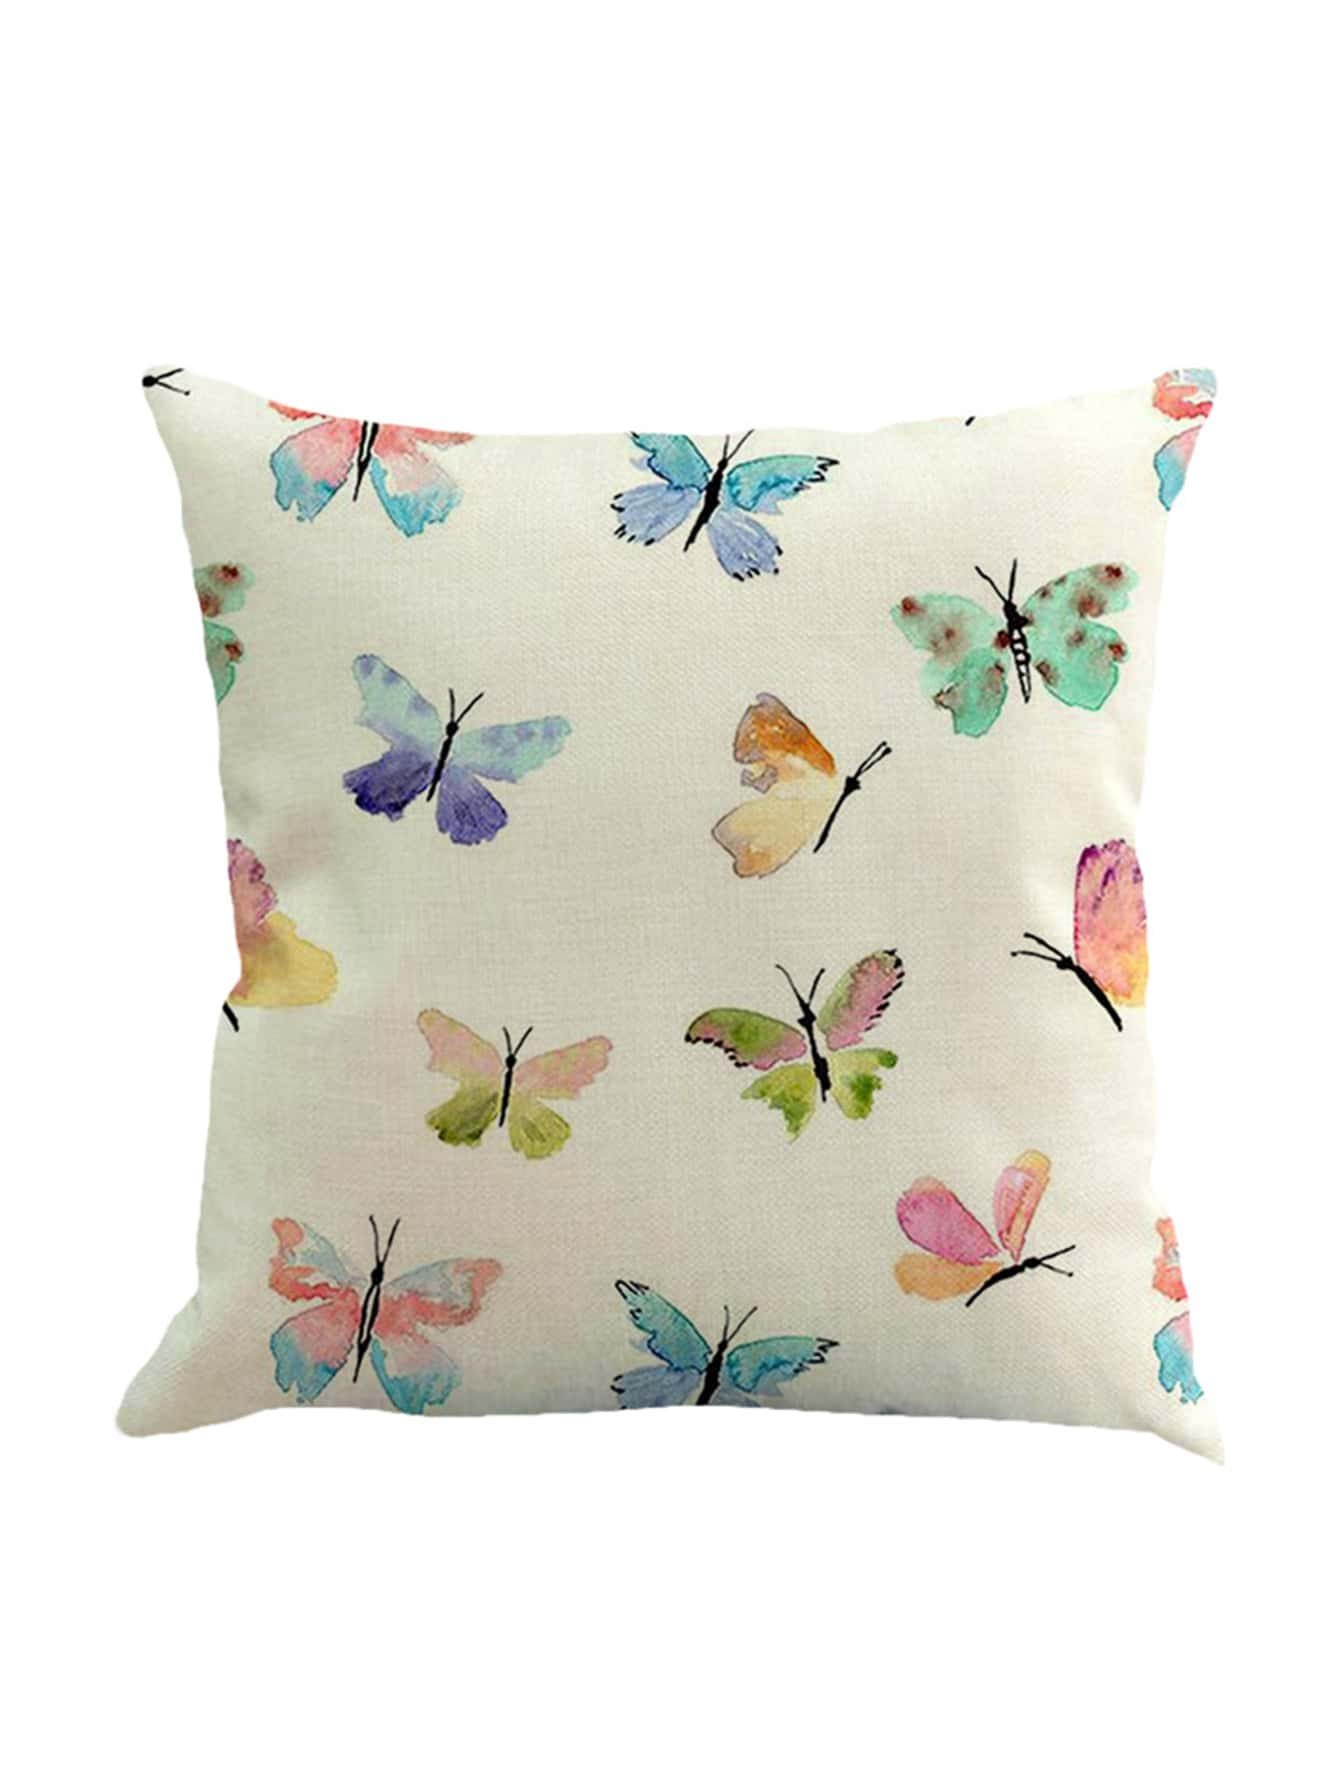 Image of Butterfly Overlay Print Pillowcase Cover